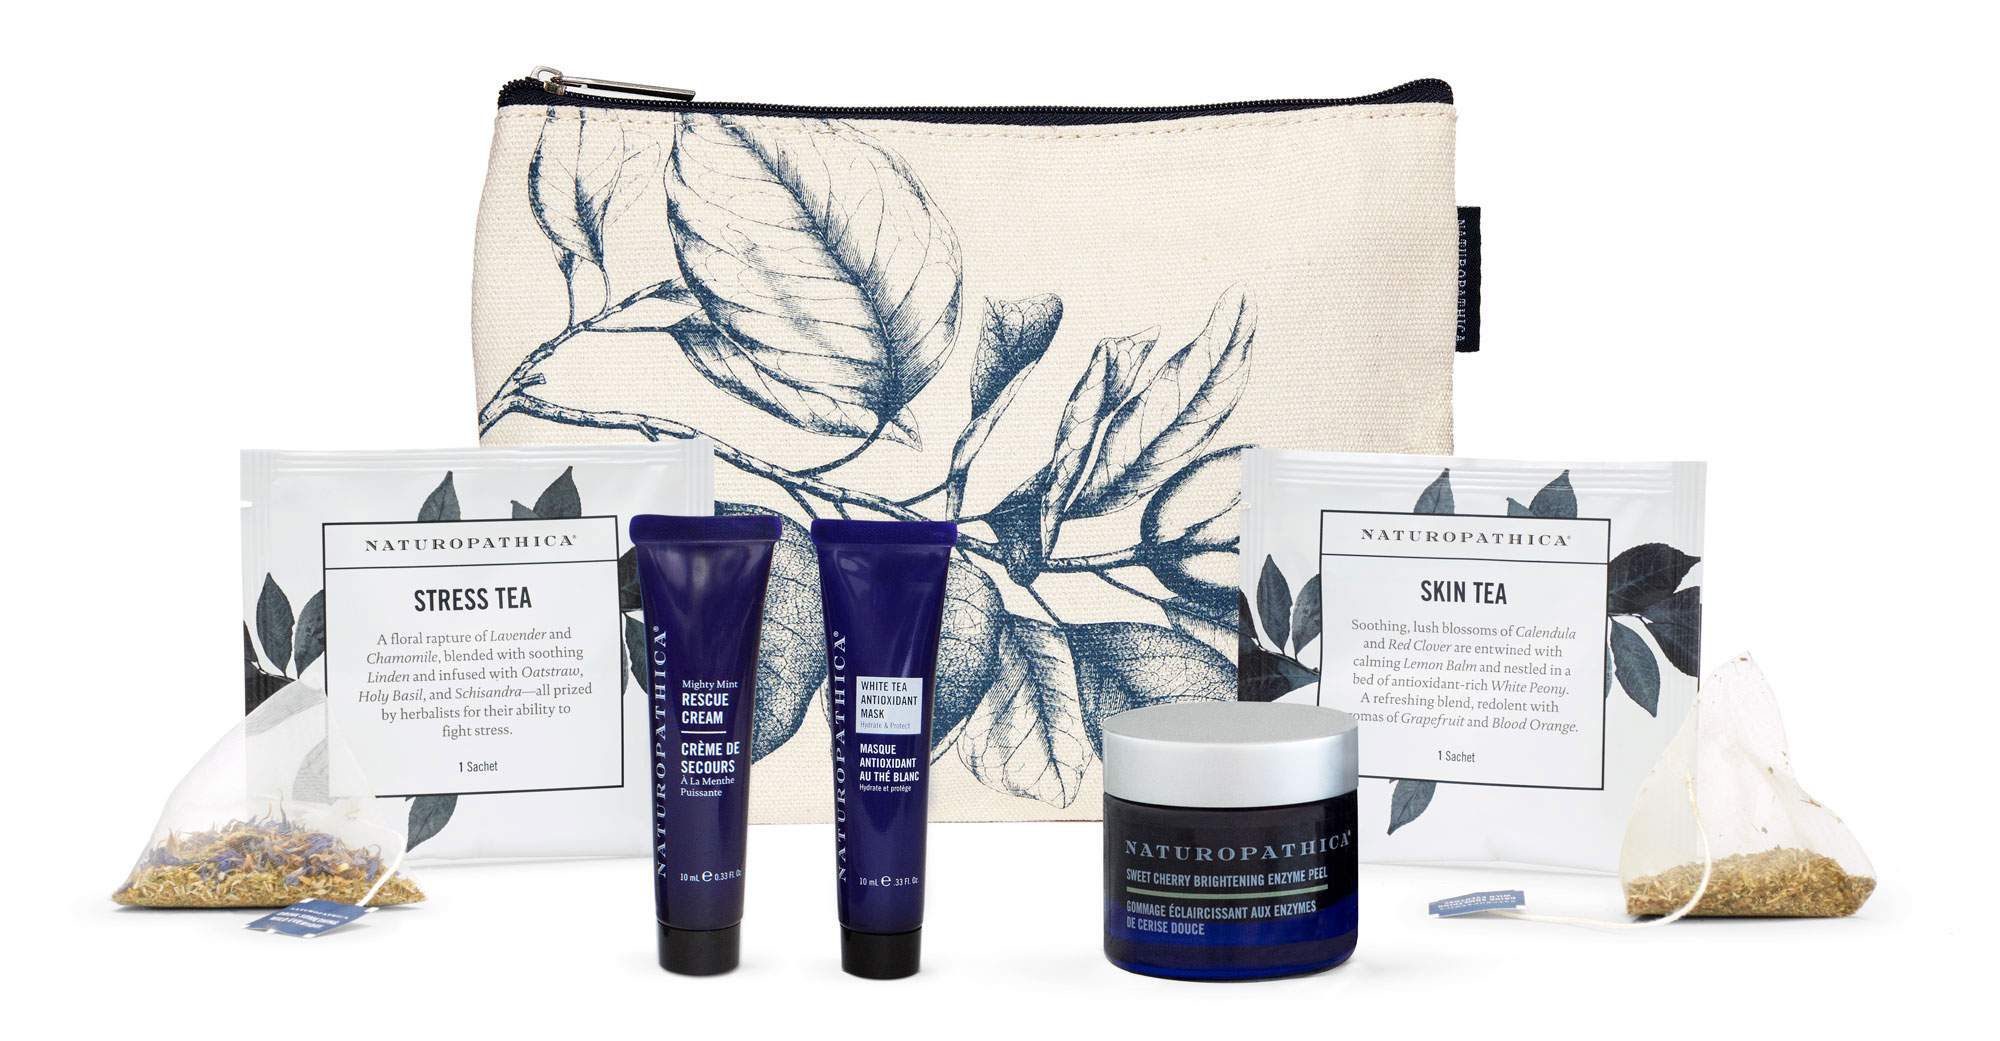 Mother's Day Gift Guide Naturopathica Savor the Moment Gift Set - Jump start your mama's self-care ritual with this skin- and senses-soothing face mask and tea kit. $60, naturopathica.com